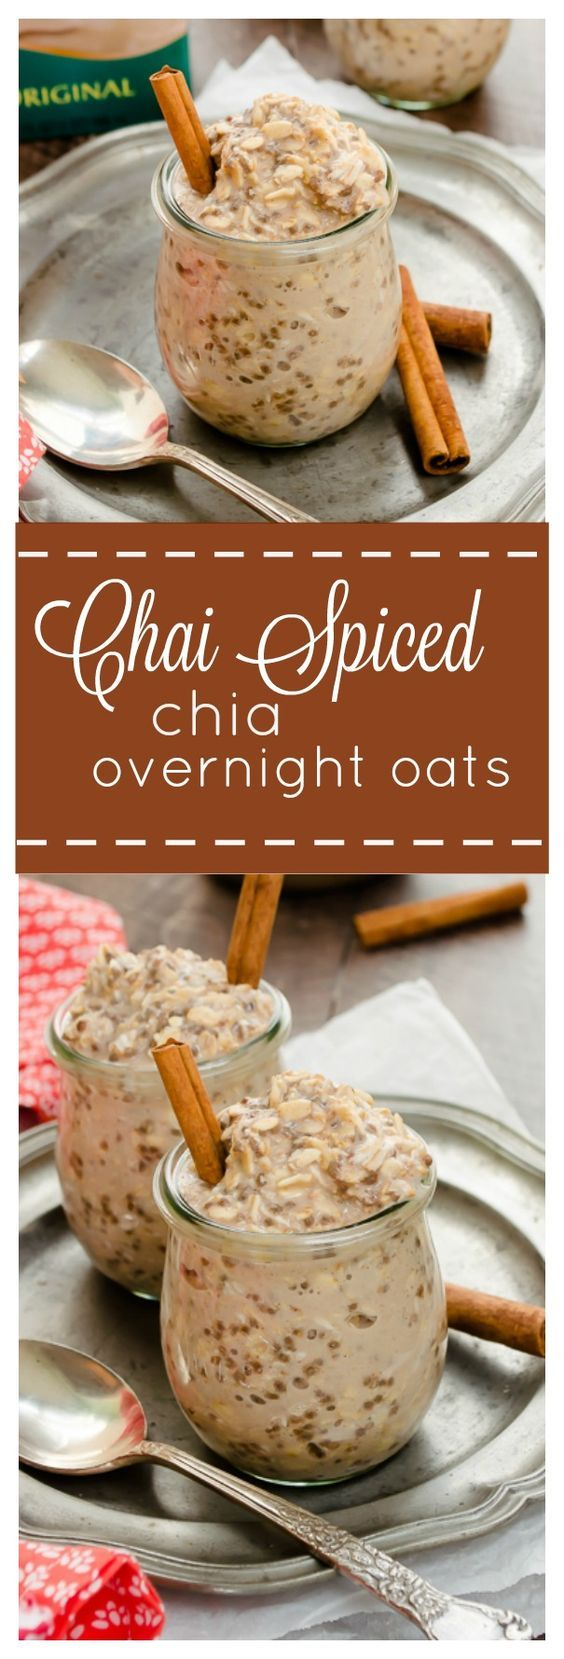 Chia Recipes: A popular superfood, chia fills you up and boosts your energy. Sprinkle these seeds on anything, from cereal and veggies to yogurt and sauces.